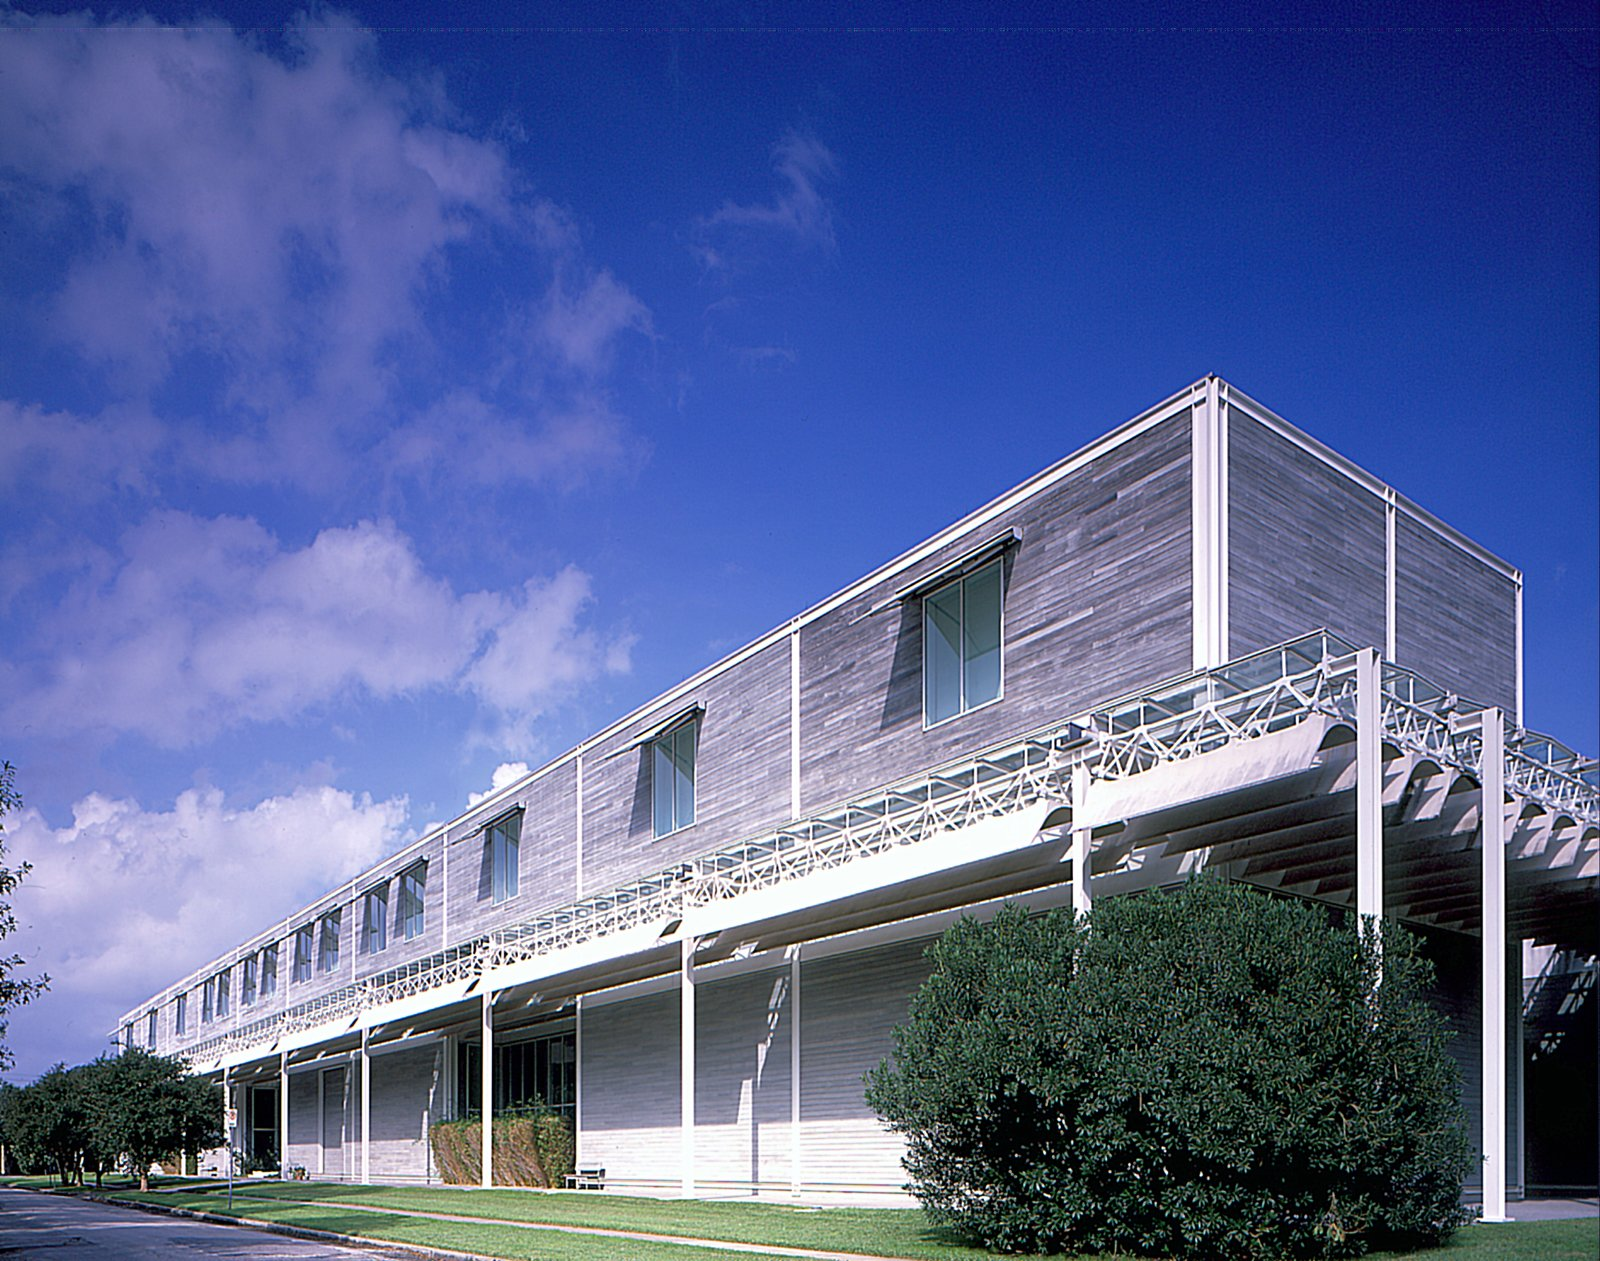 The Menil Collection building by acclaimed architect Renzo Piano. Visit the Menil Collection online at menil.org.  Photo 14 of 17 in Houston, Texas